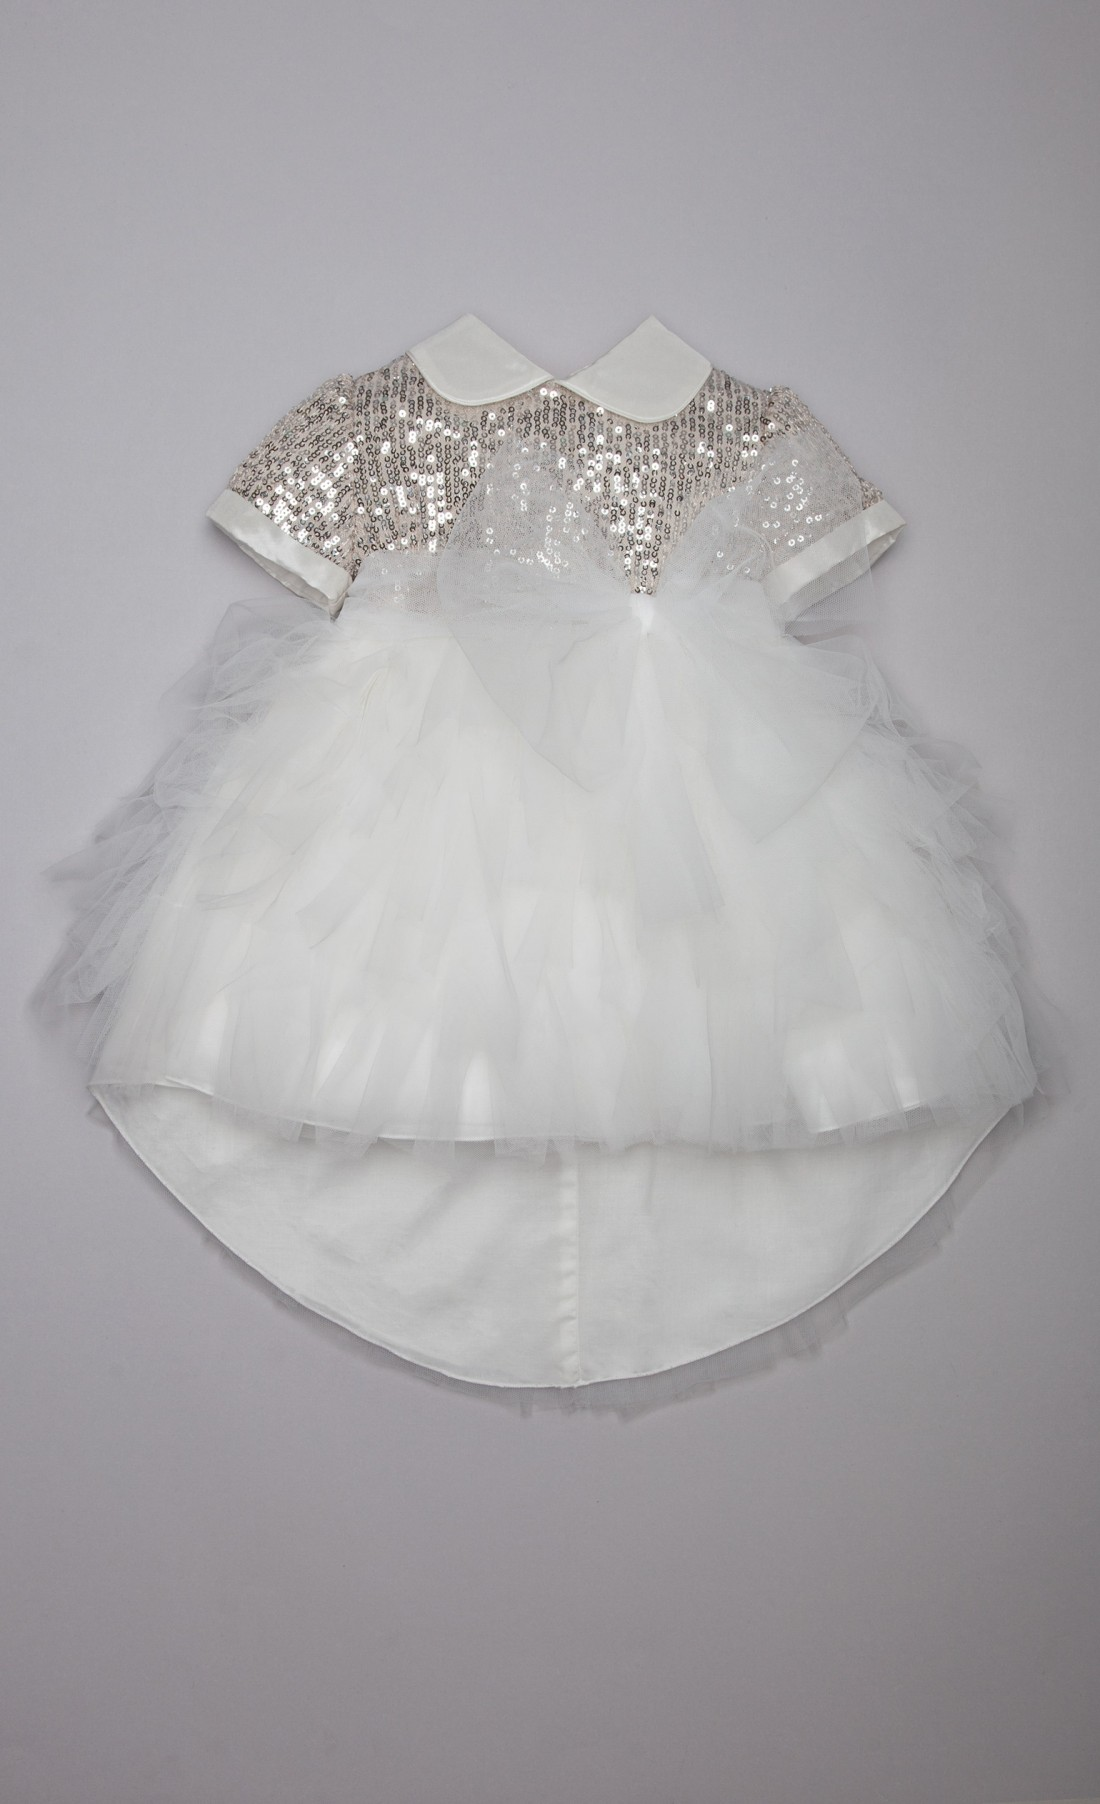 Abito gonna asimmetrica in tulle paillettes panna